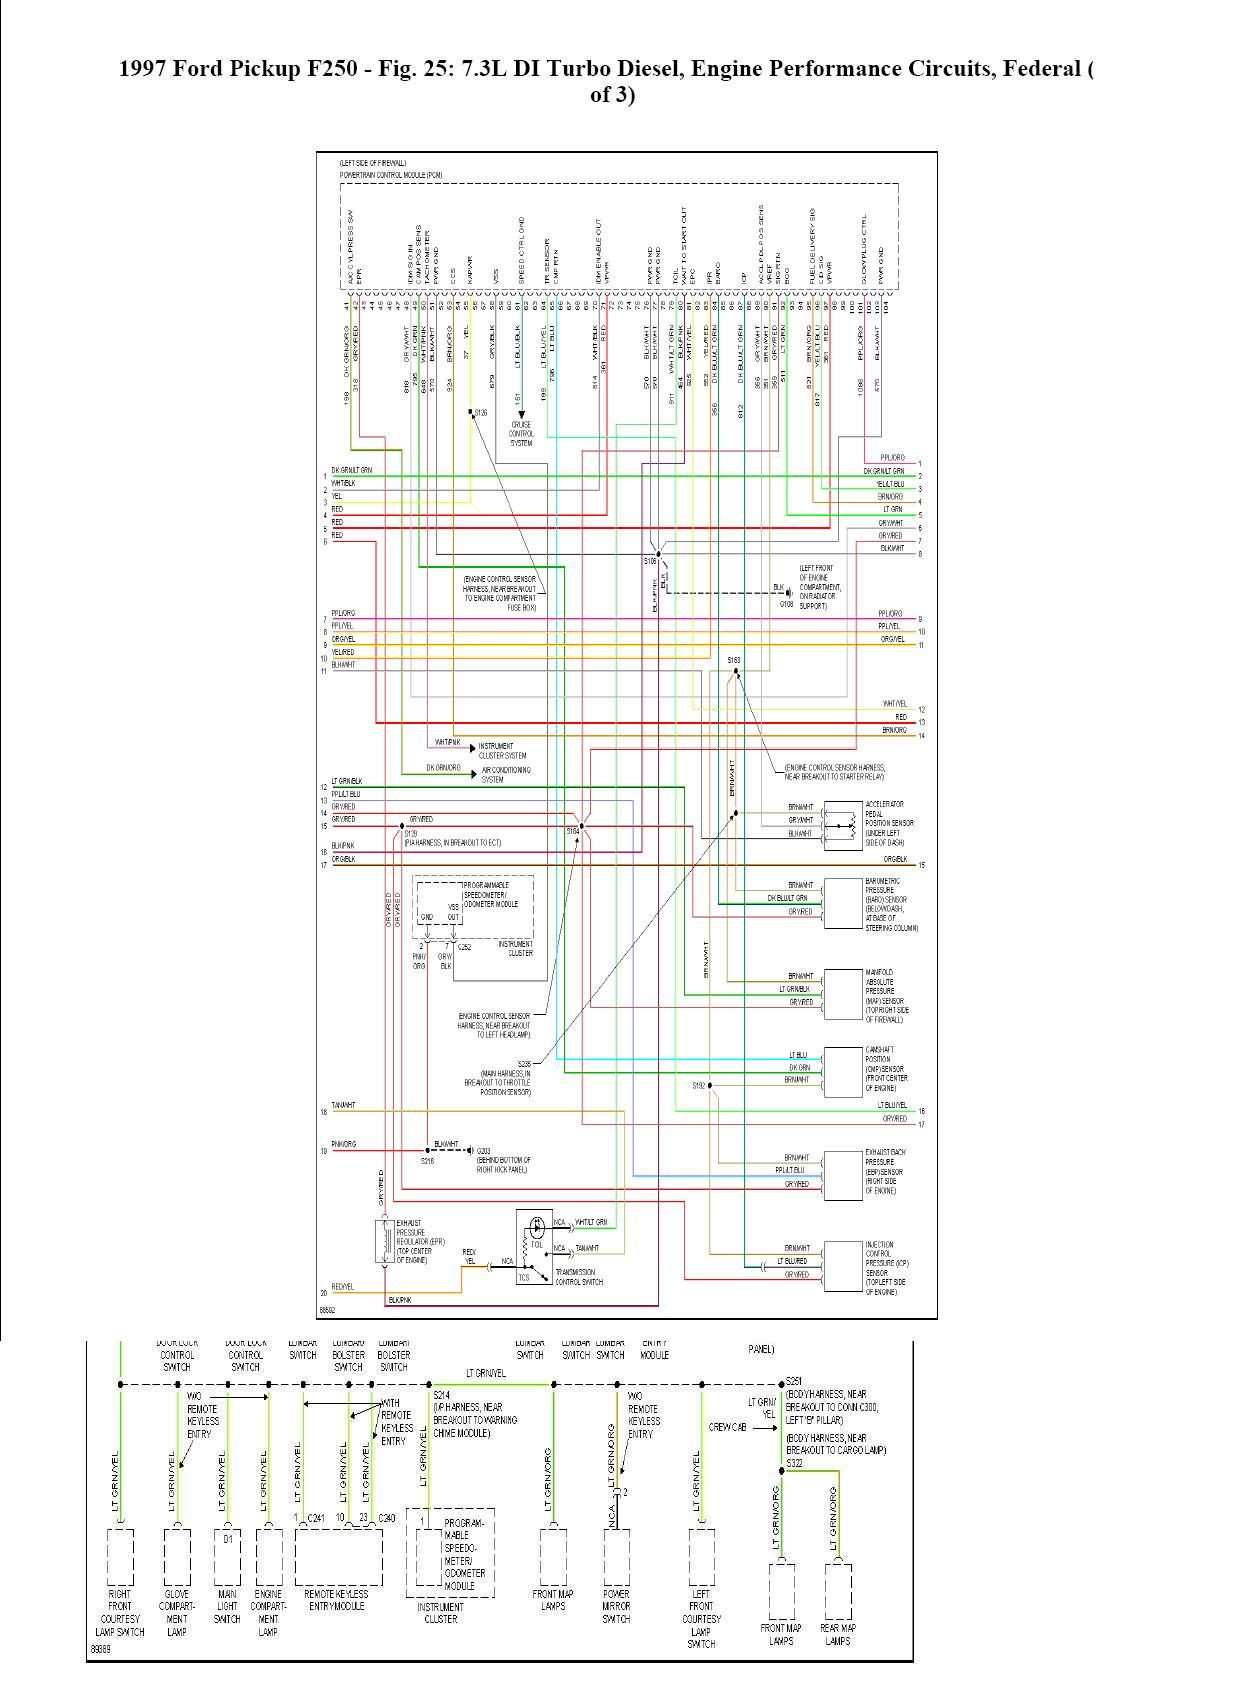 97 f250 73 fuel system diagram wiring diagram ford 7.3 diesel engine diagram 1997 ford f250 fuel diagram #15